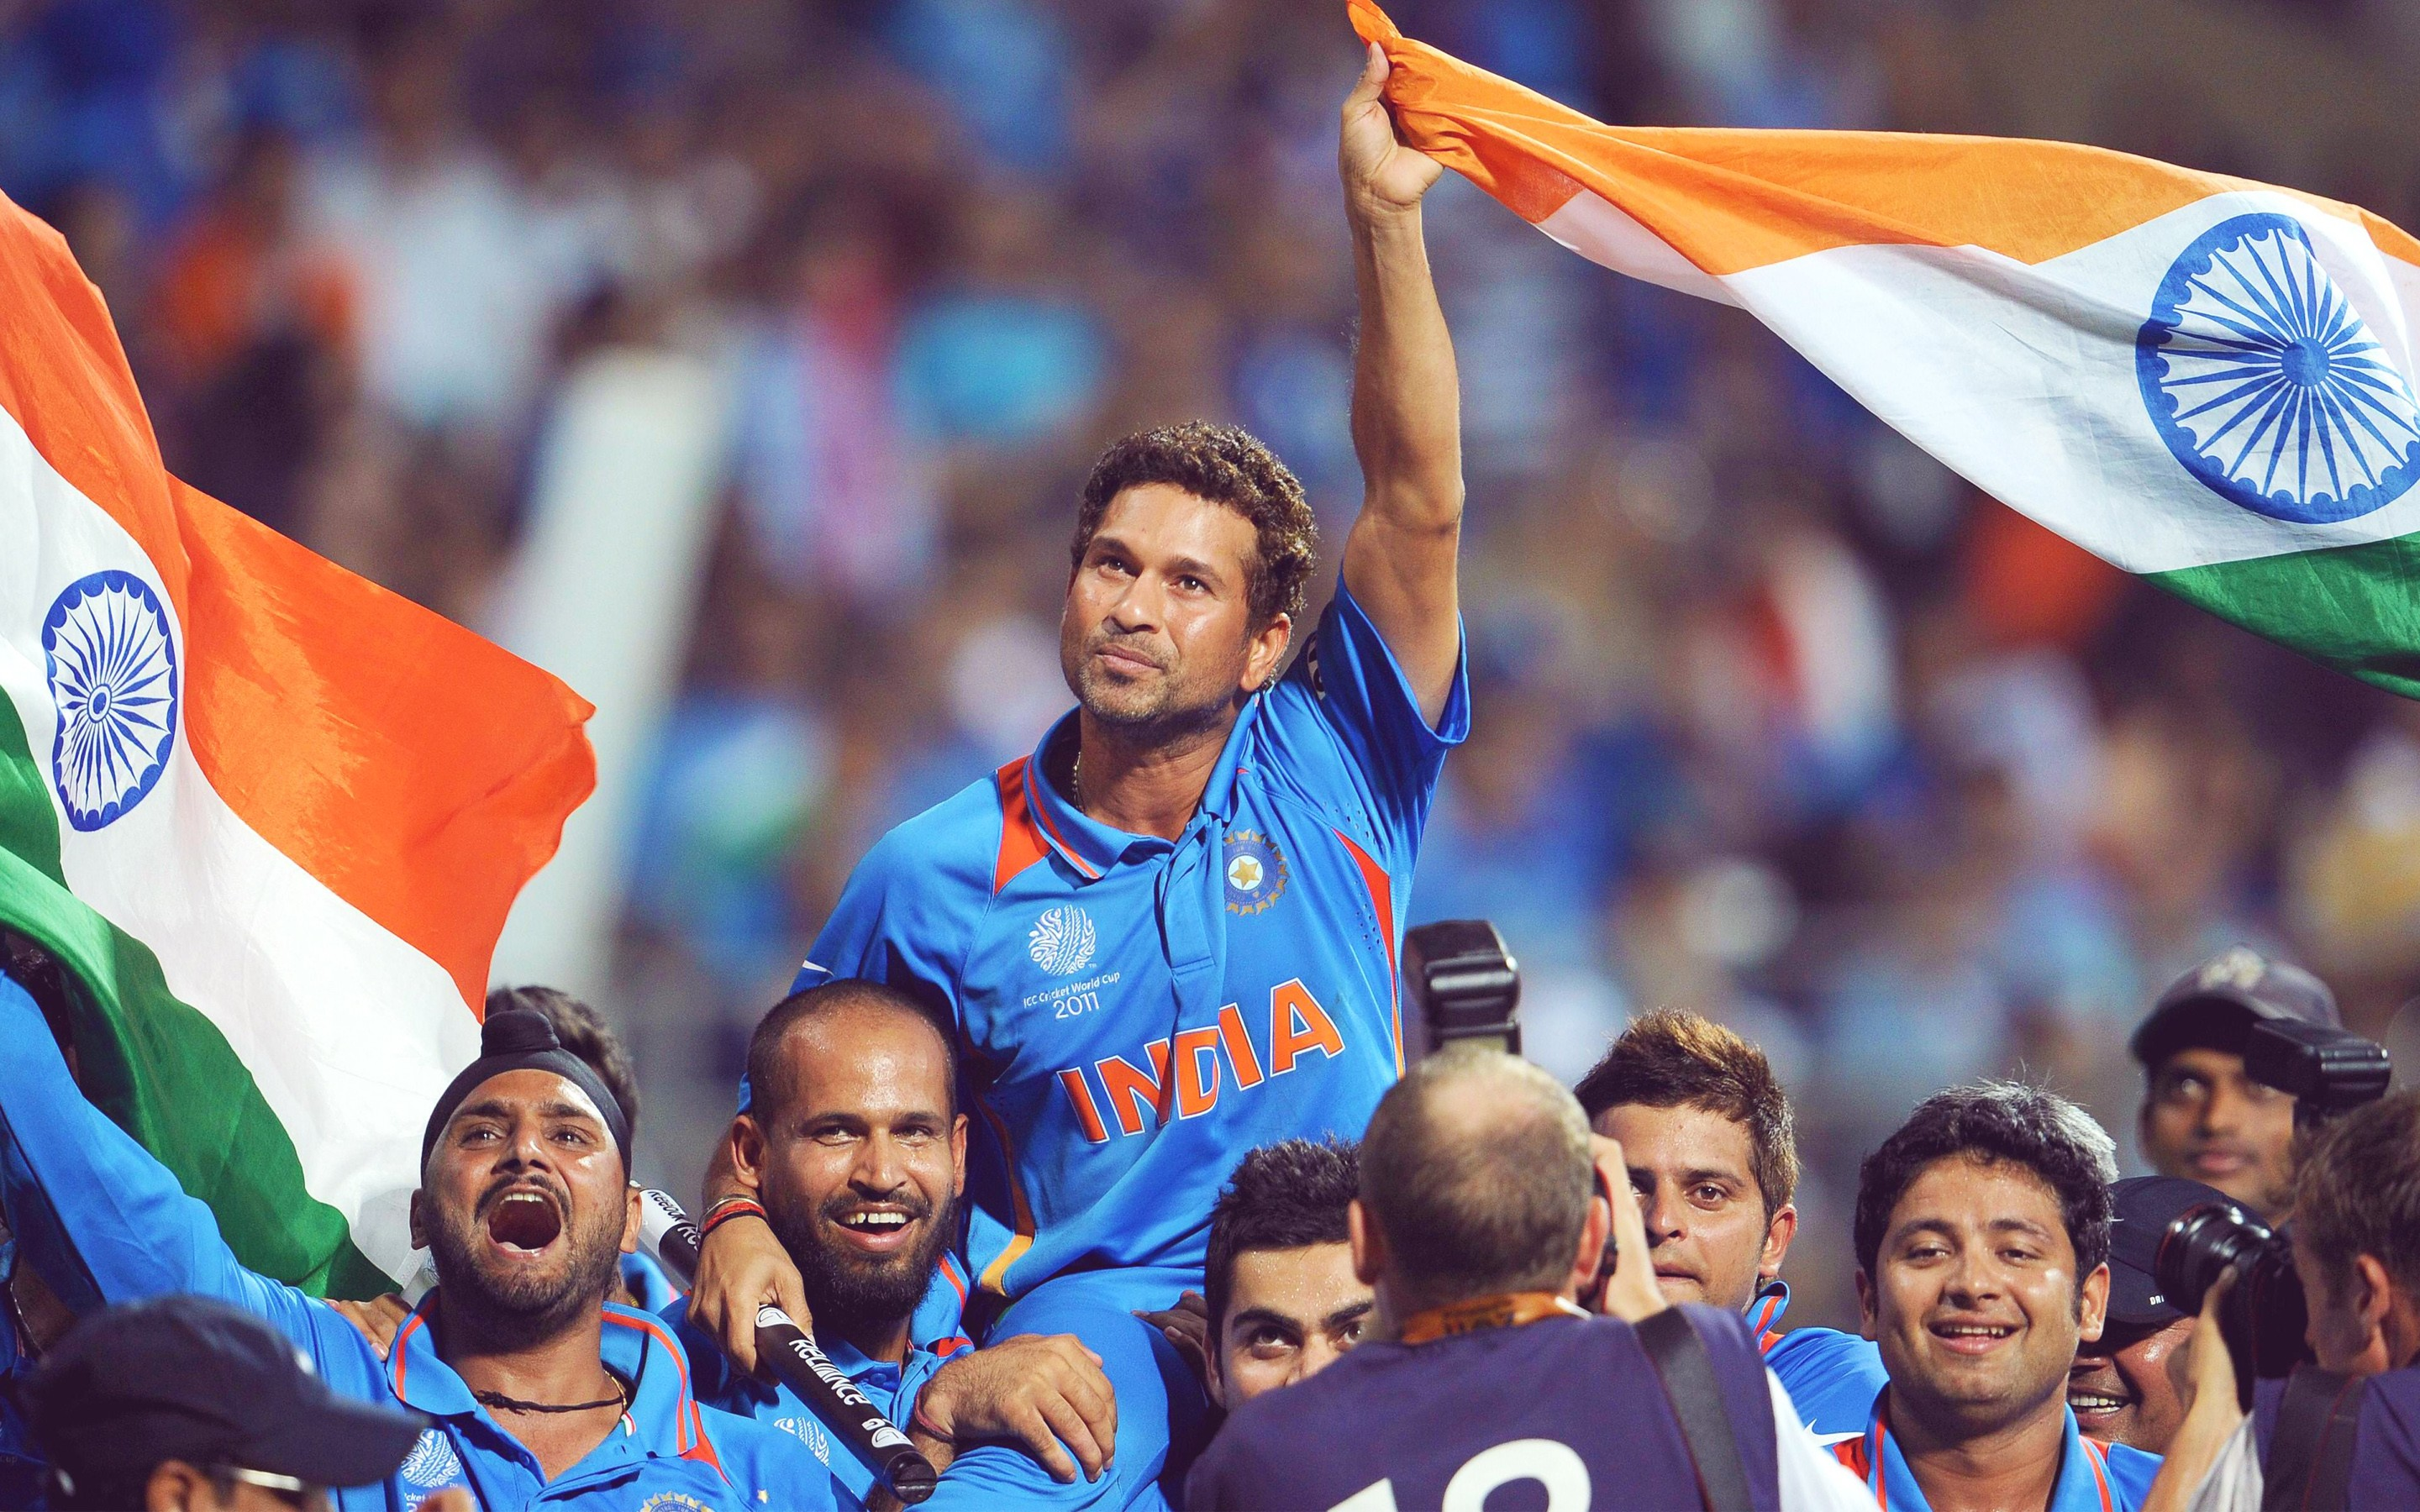 best sachin tendulkar world cup winning match to celebrate with team members and audience pose background free mobile desktop images hd